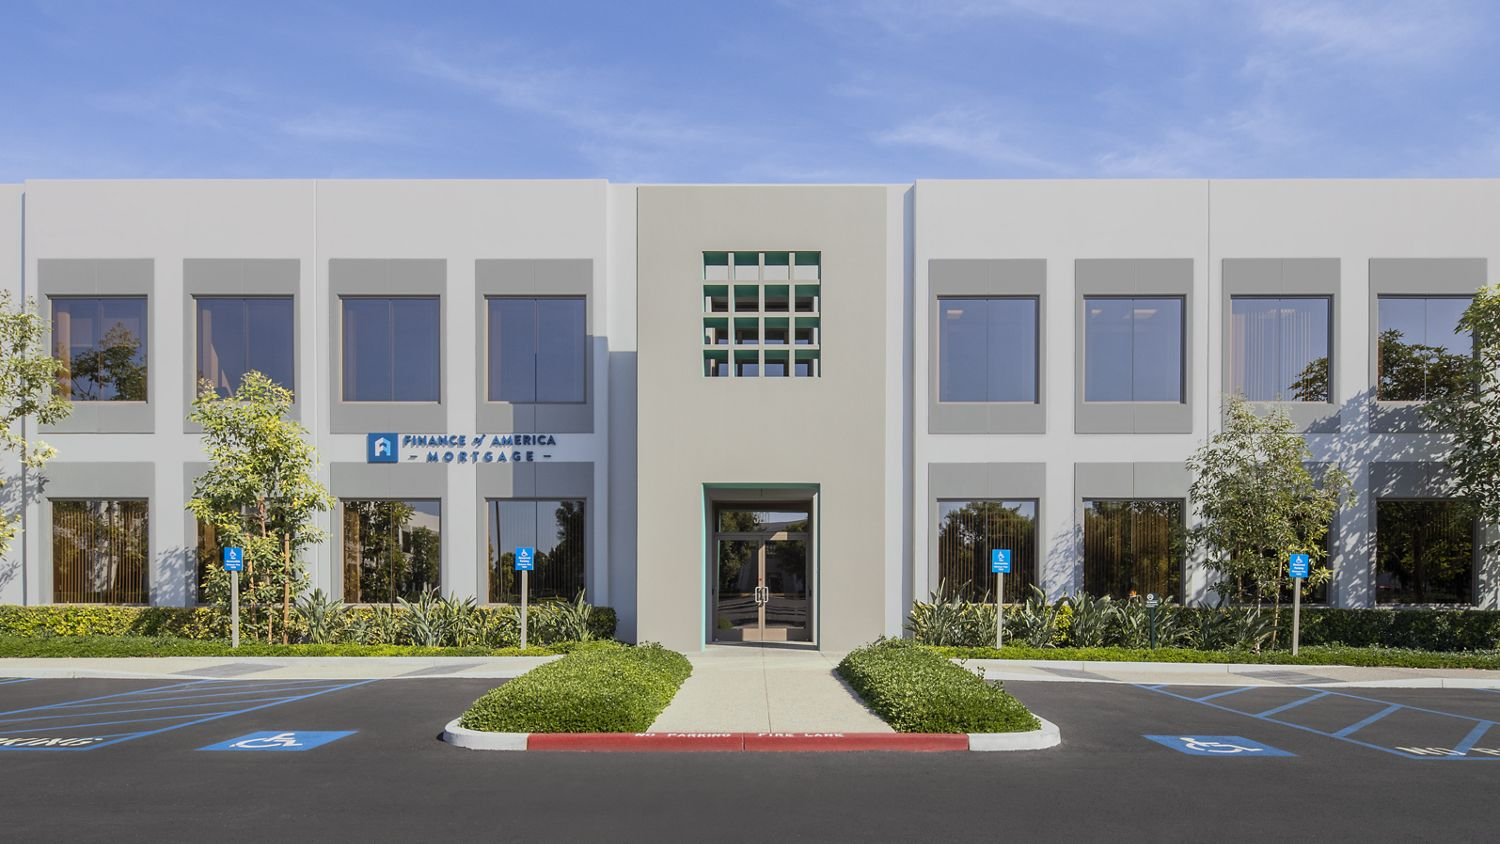 After reinvestment photography of the building exterior at Market Place Center - 320 Commerce in Irvine, CA